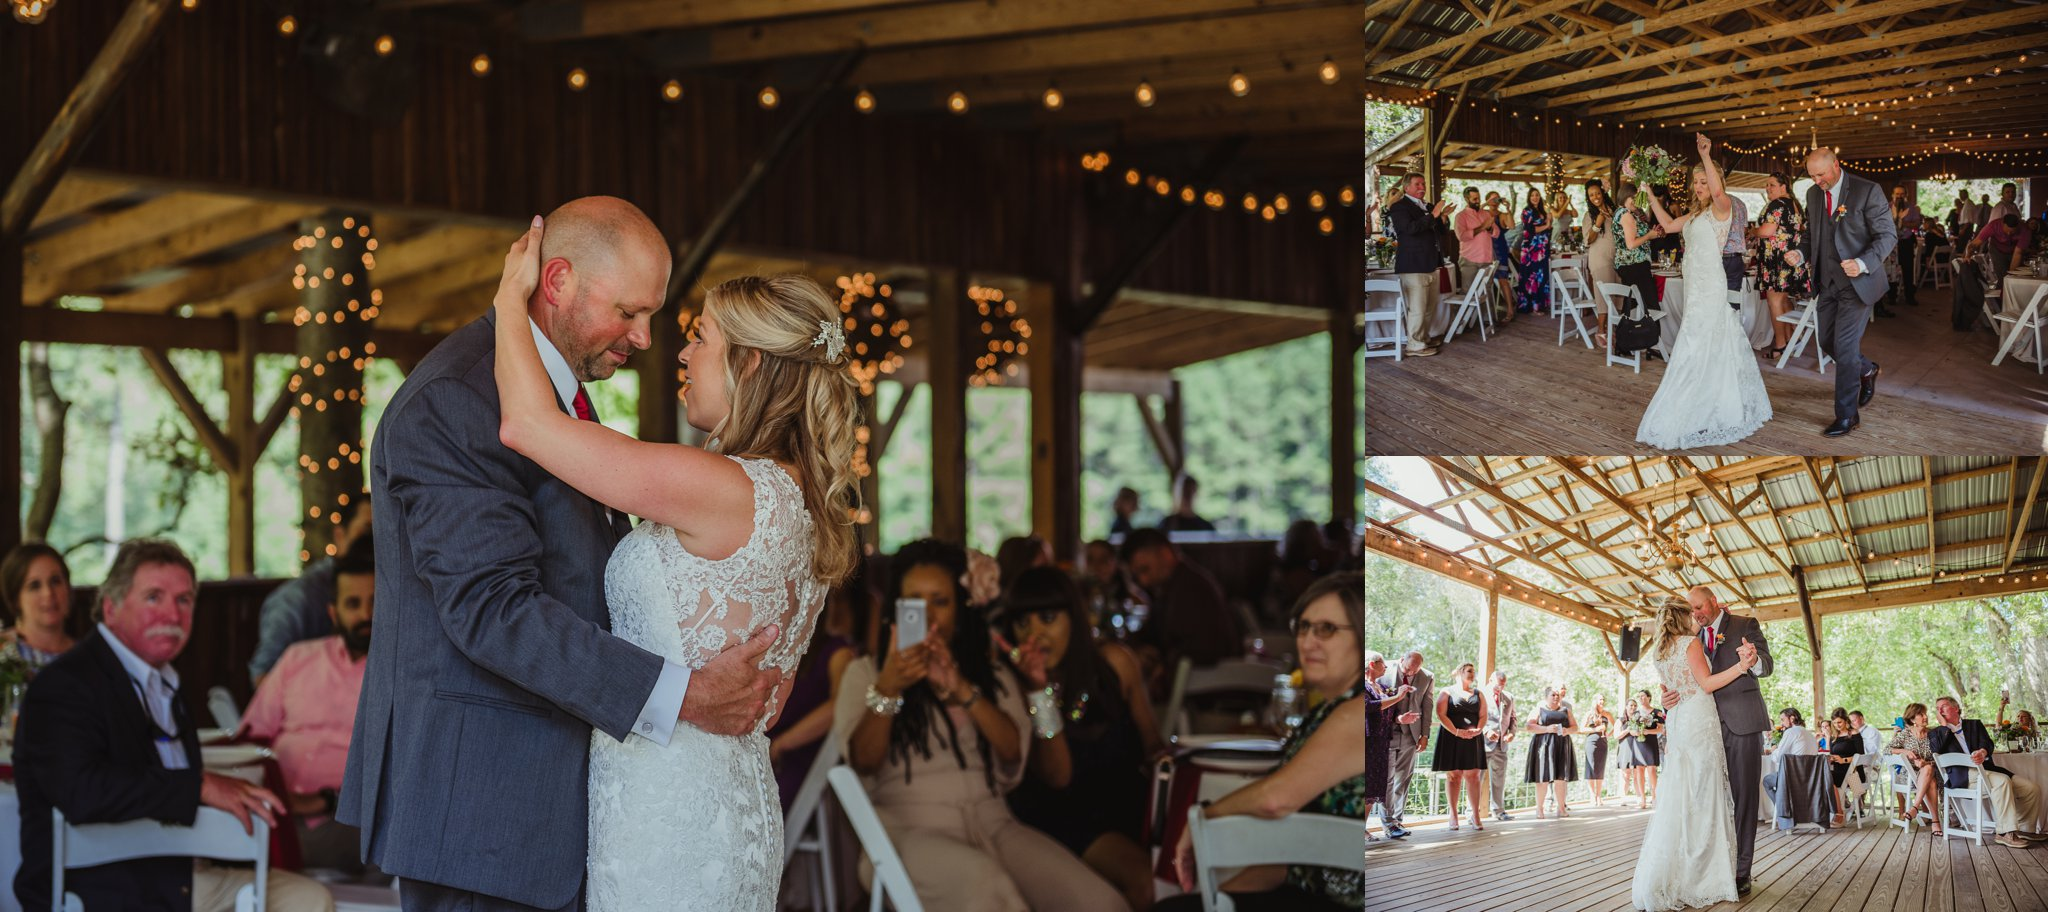 The bride and groom have a first dance during their wedding reception at Cedar Grove Acres near Raleigh, pictures by Rose Trail Images.